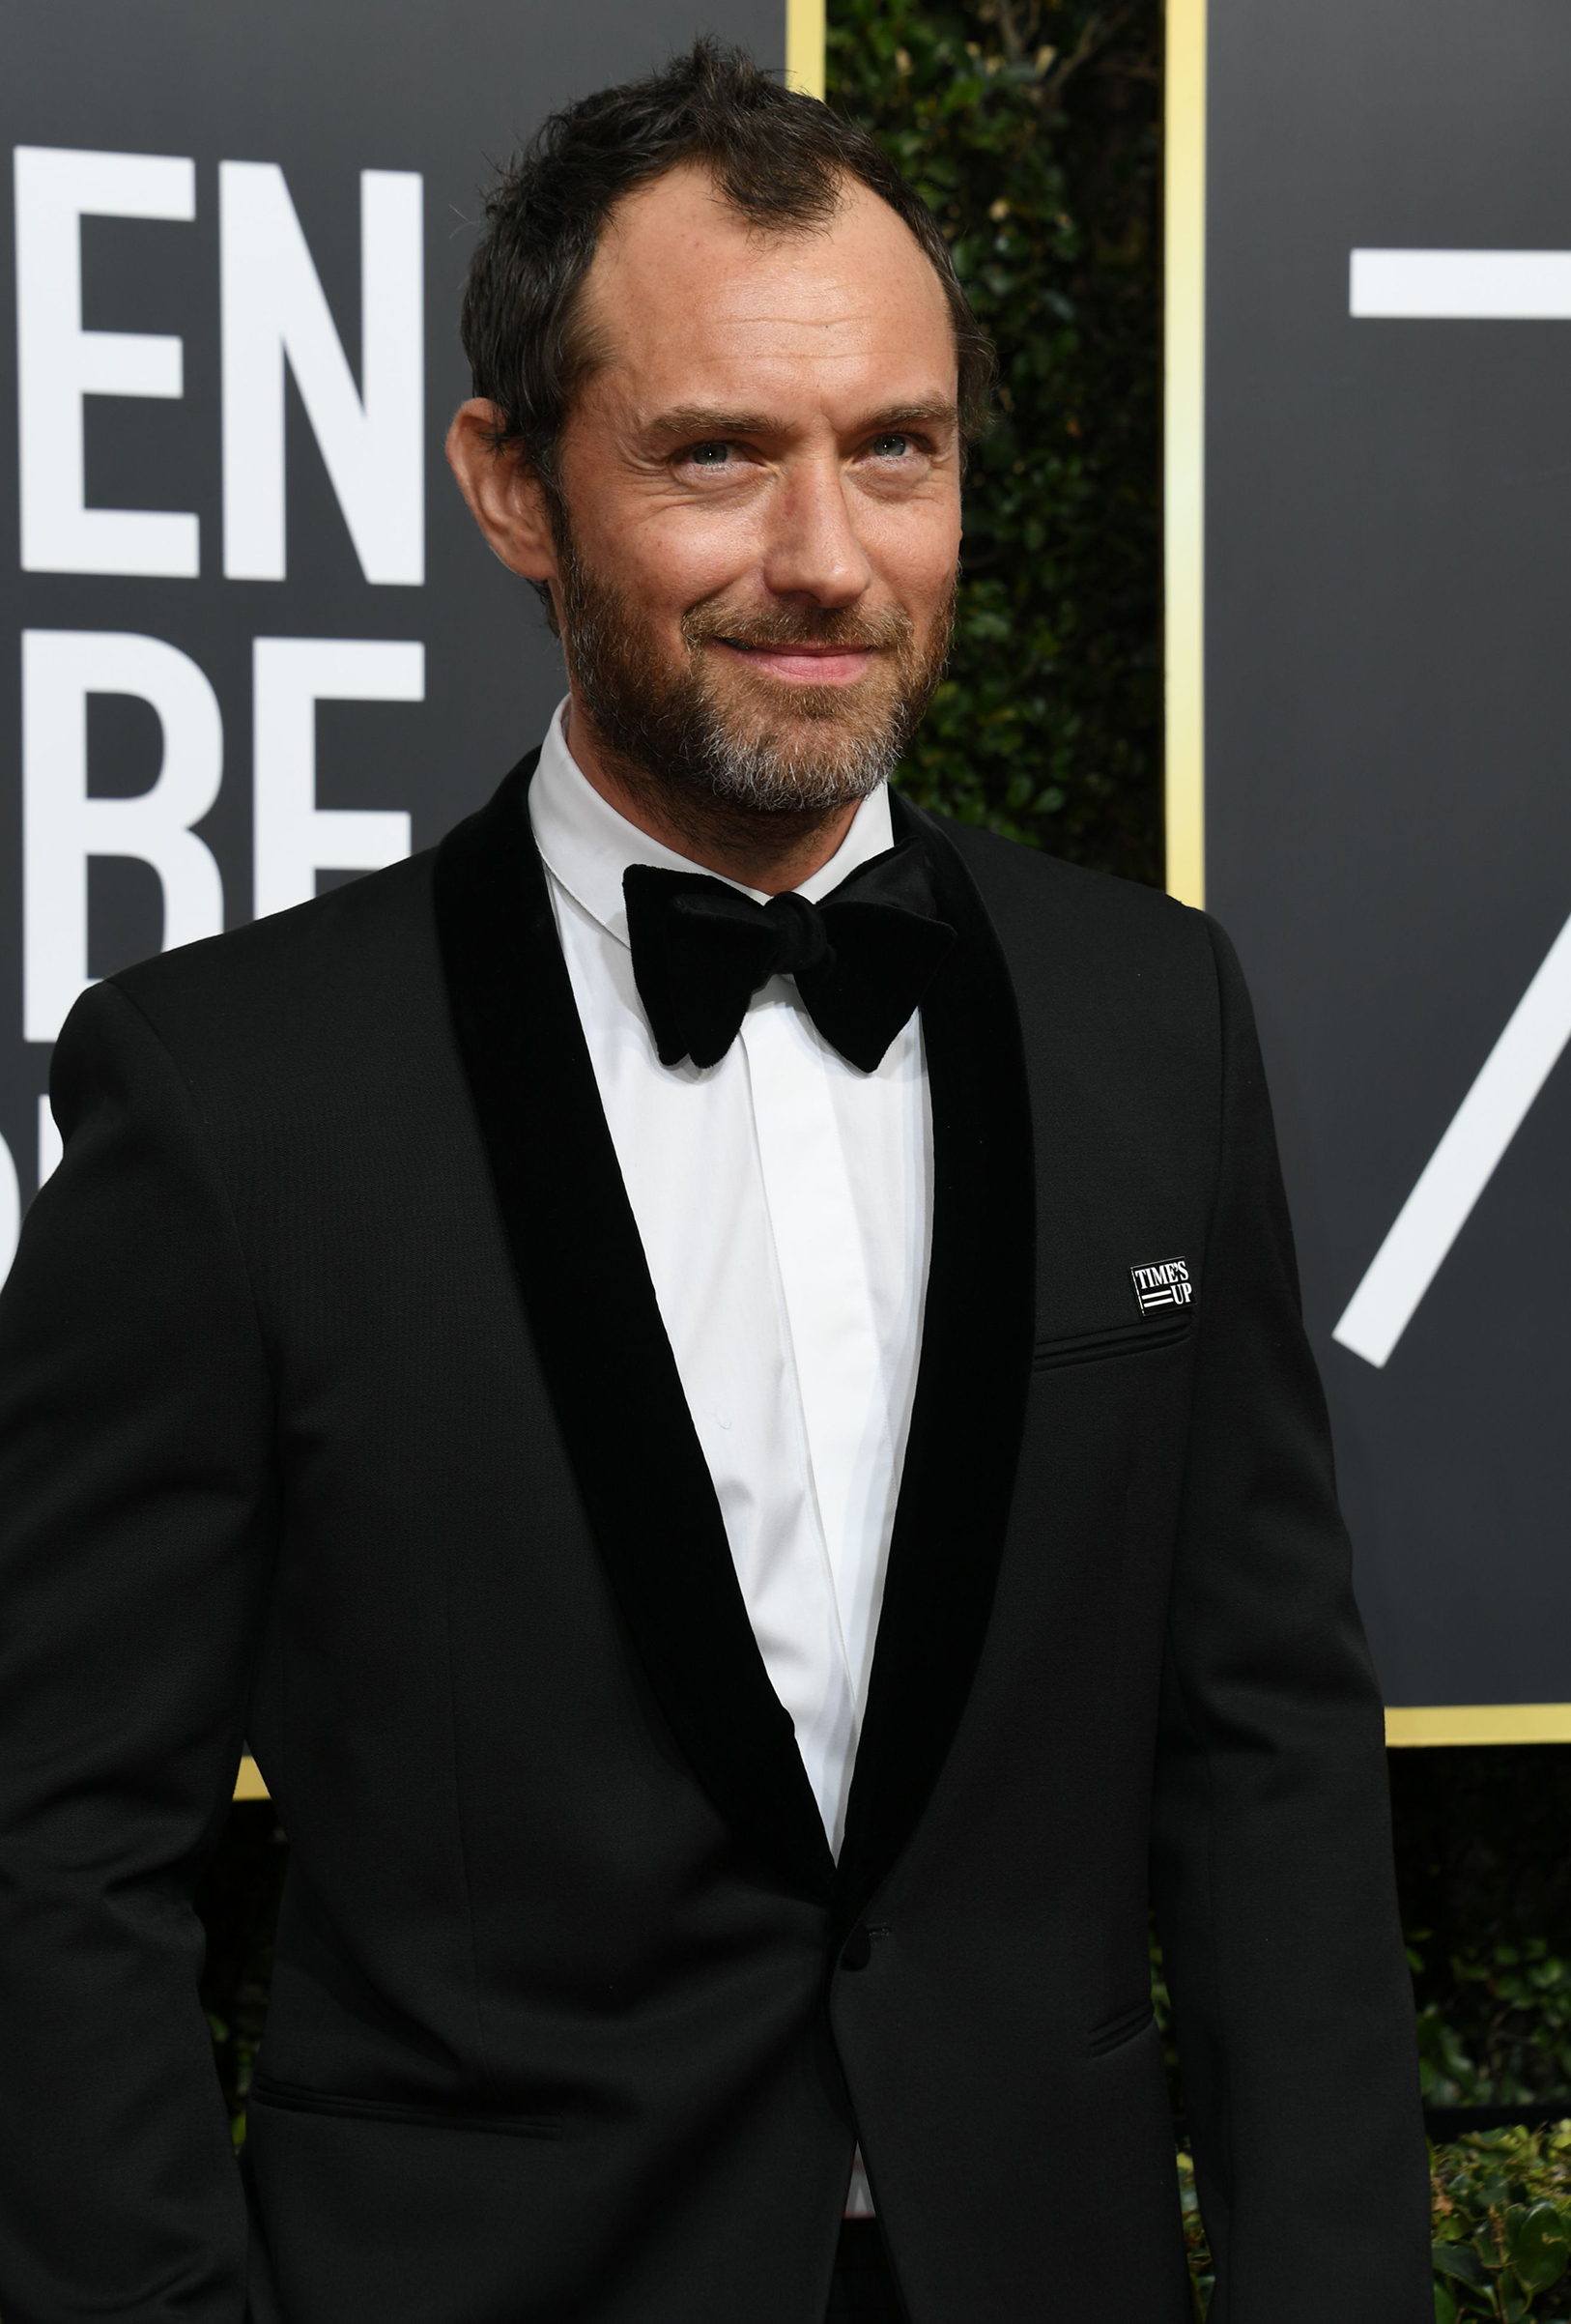 Actor Jude Law arrives for the 75th Golden Globe Awards on January 7, 2018, in Beverly Hills, California.